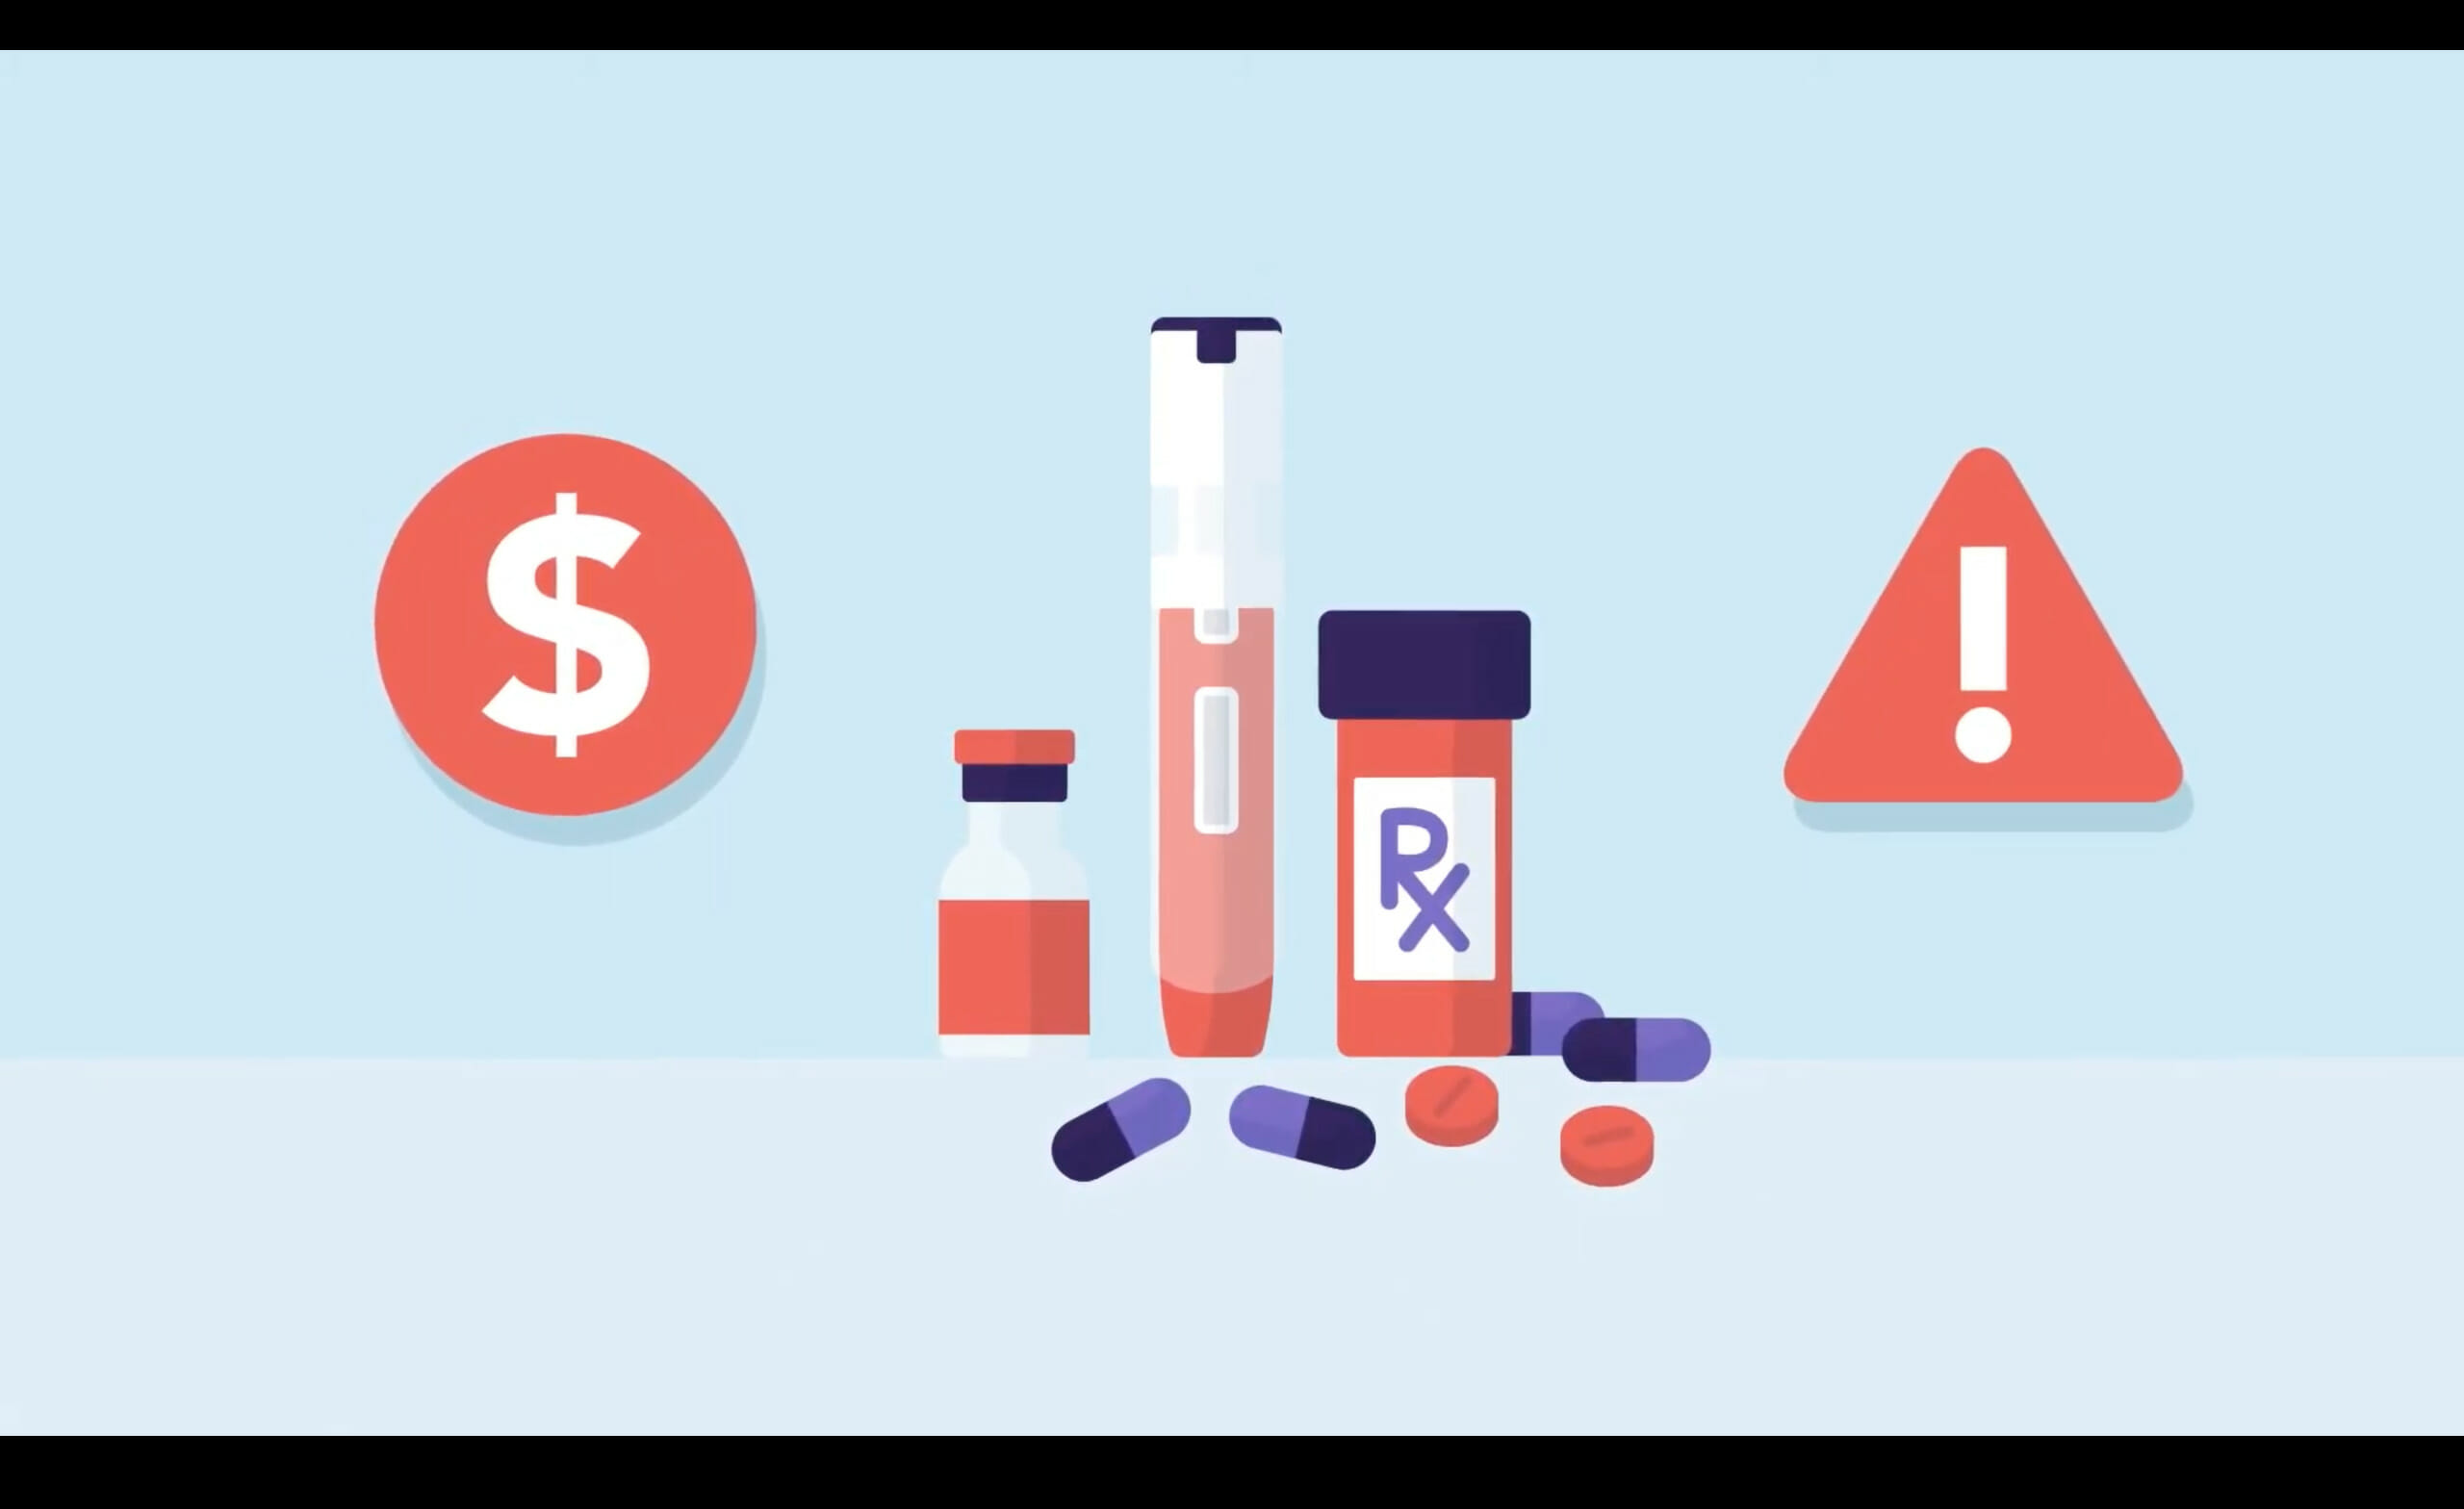 Video: The challenge of specialty medications